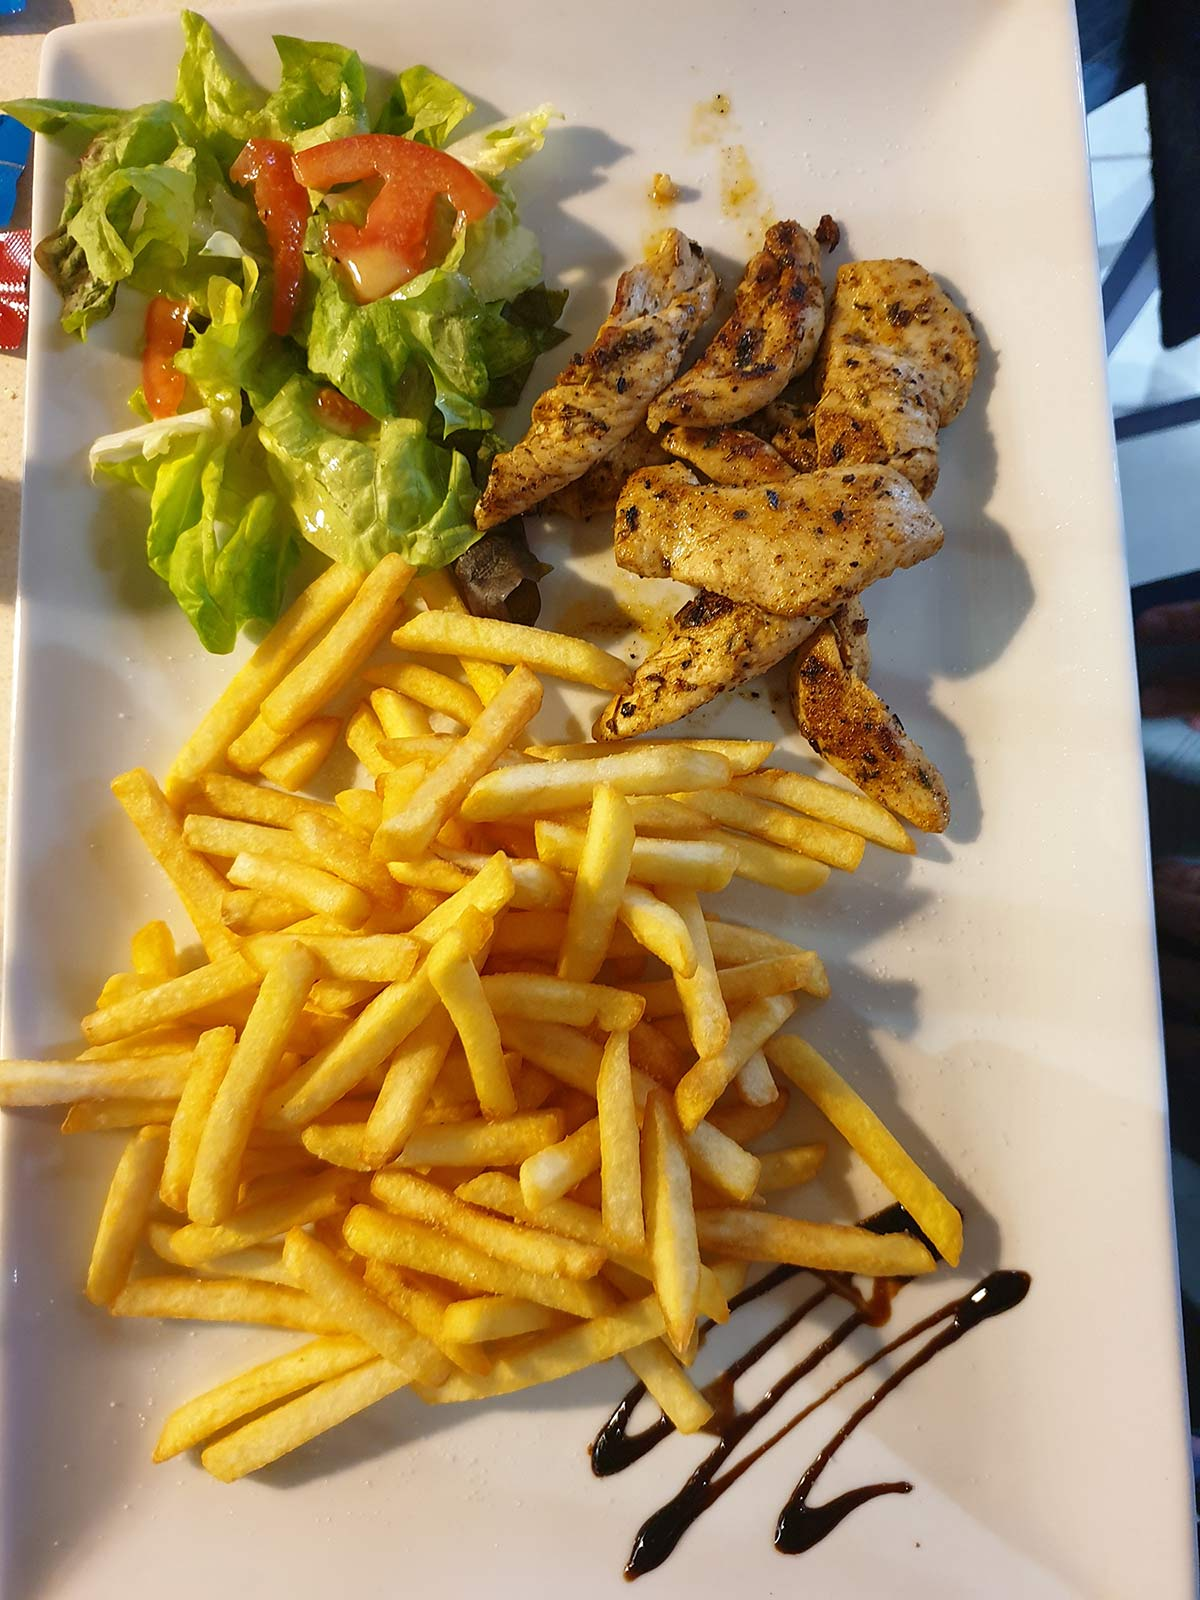 Poulet frites snack